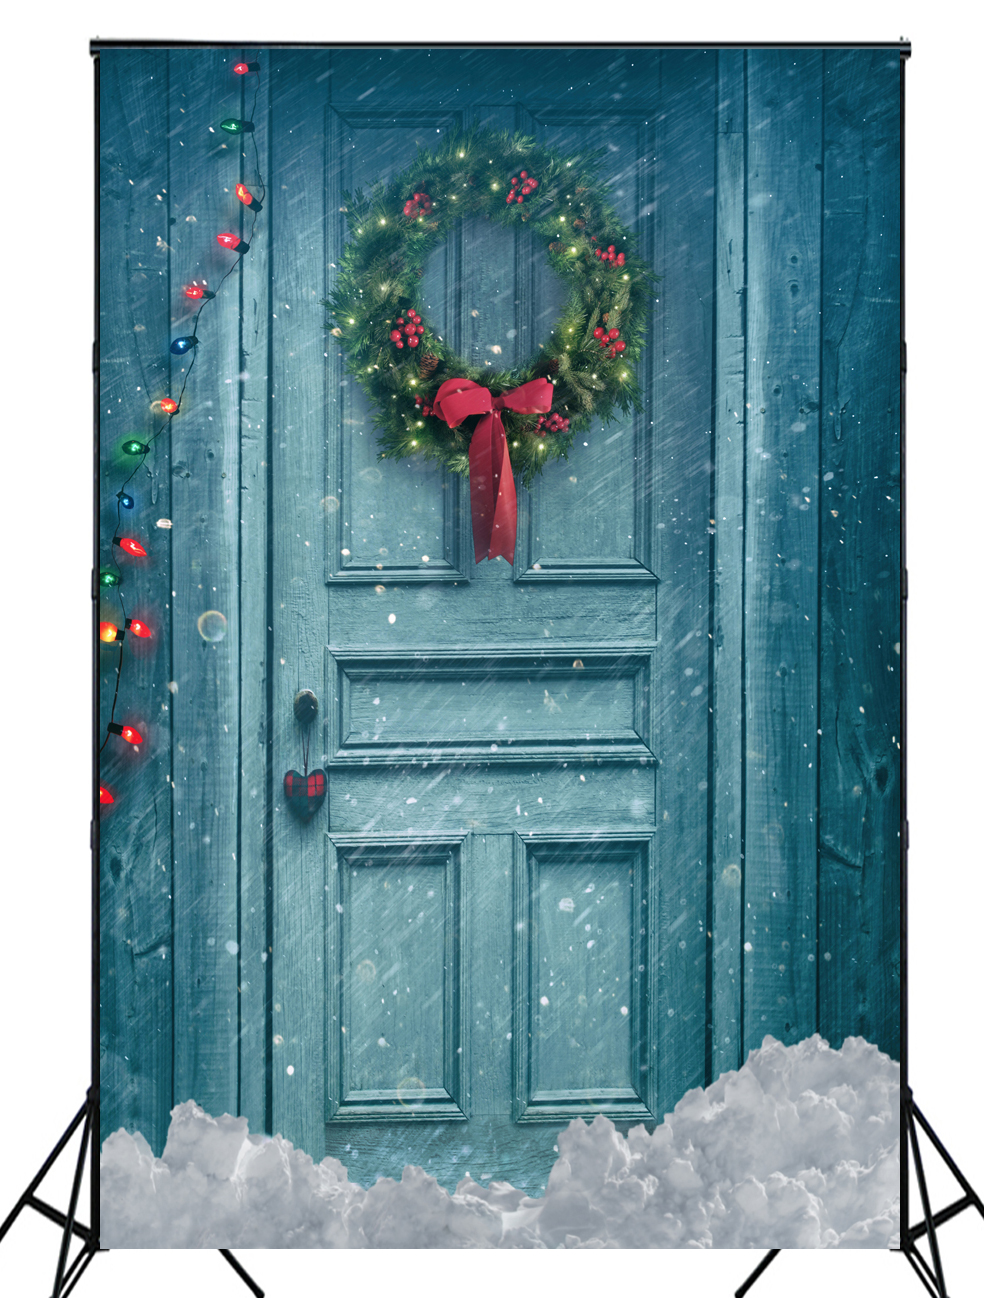 2016 New sale christmas door photography backdrops Newborn baby chrismas photo background for celebration XT- & Online Get Cheap The Doors Photo -Aliexpress.com | Alibaba Group Pezcame.Com